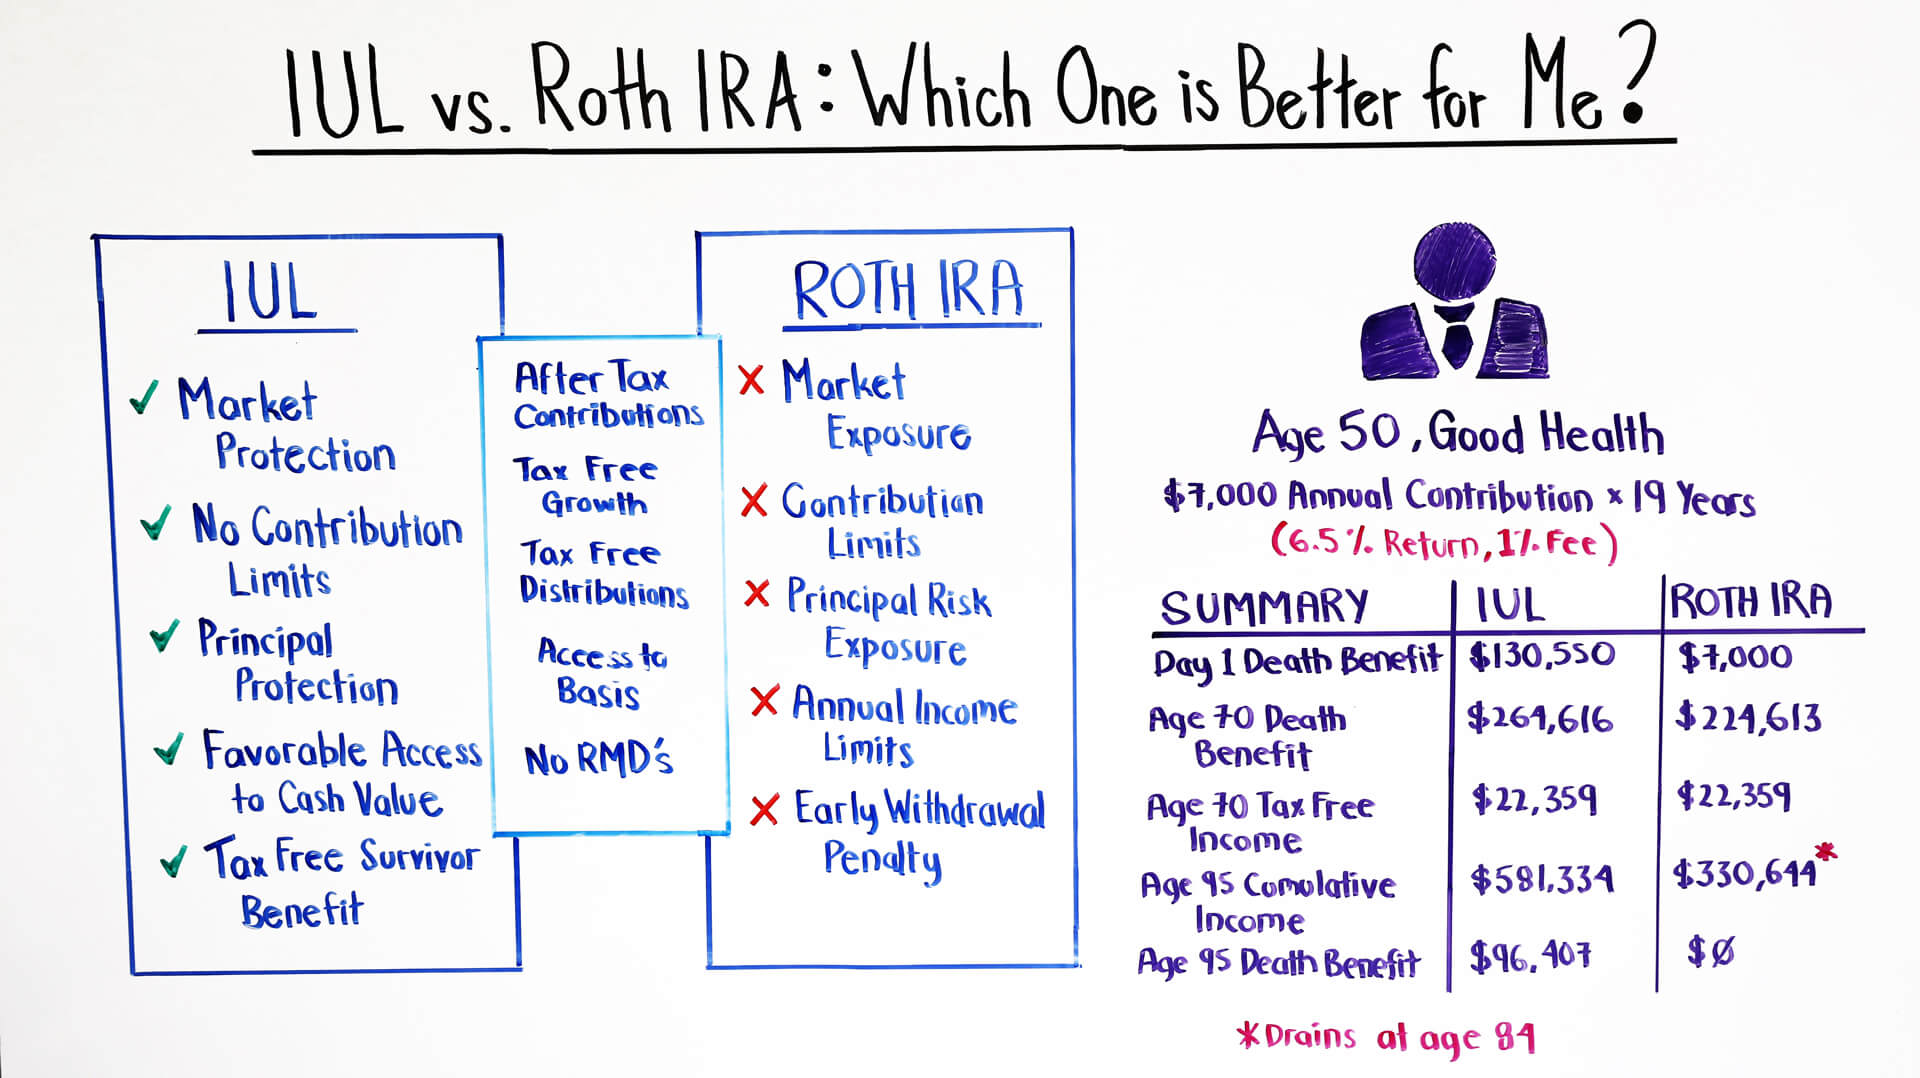 iul vs roth ira which is better for me